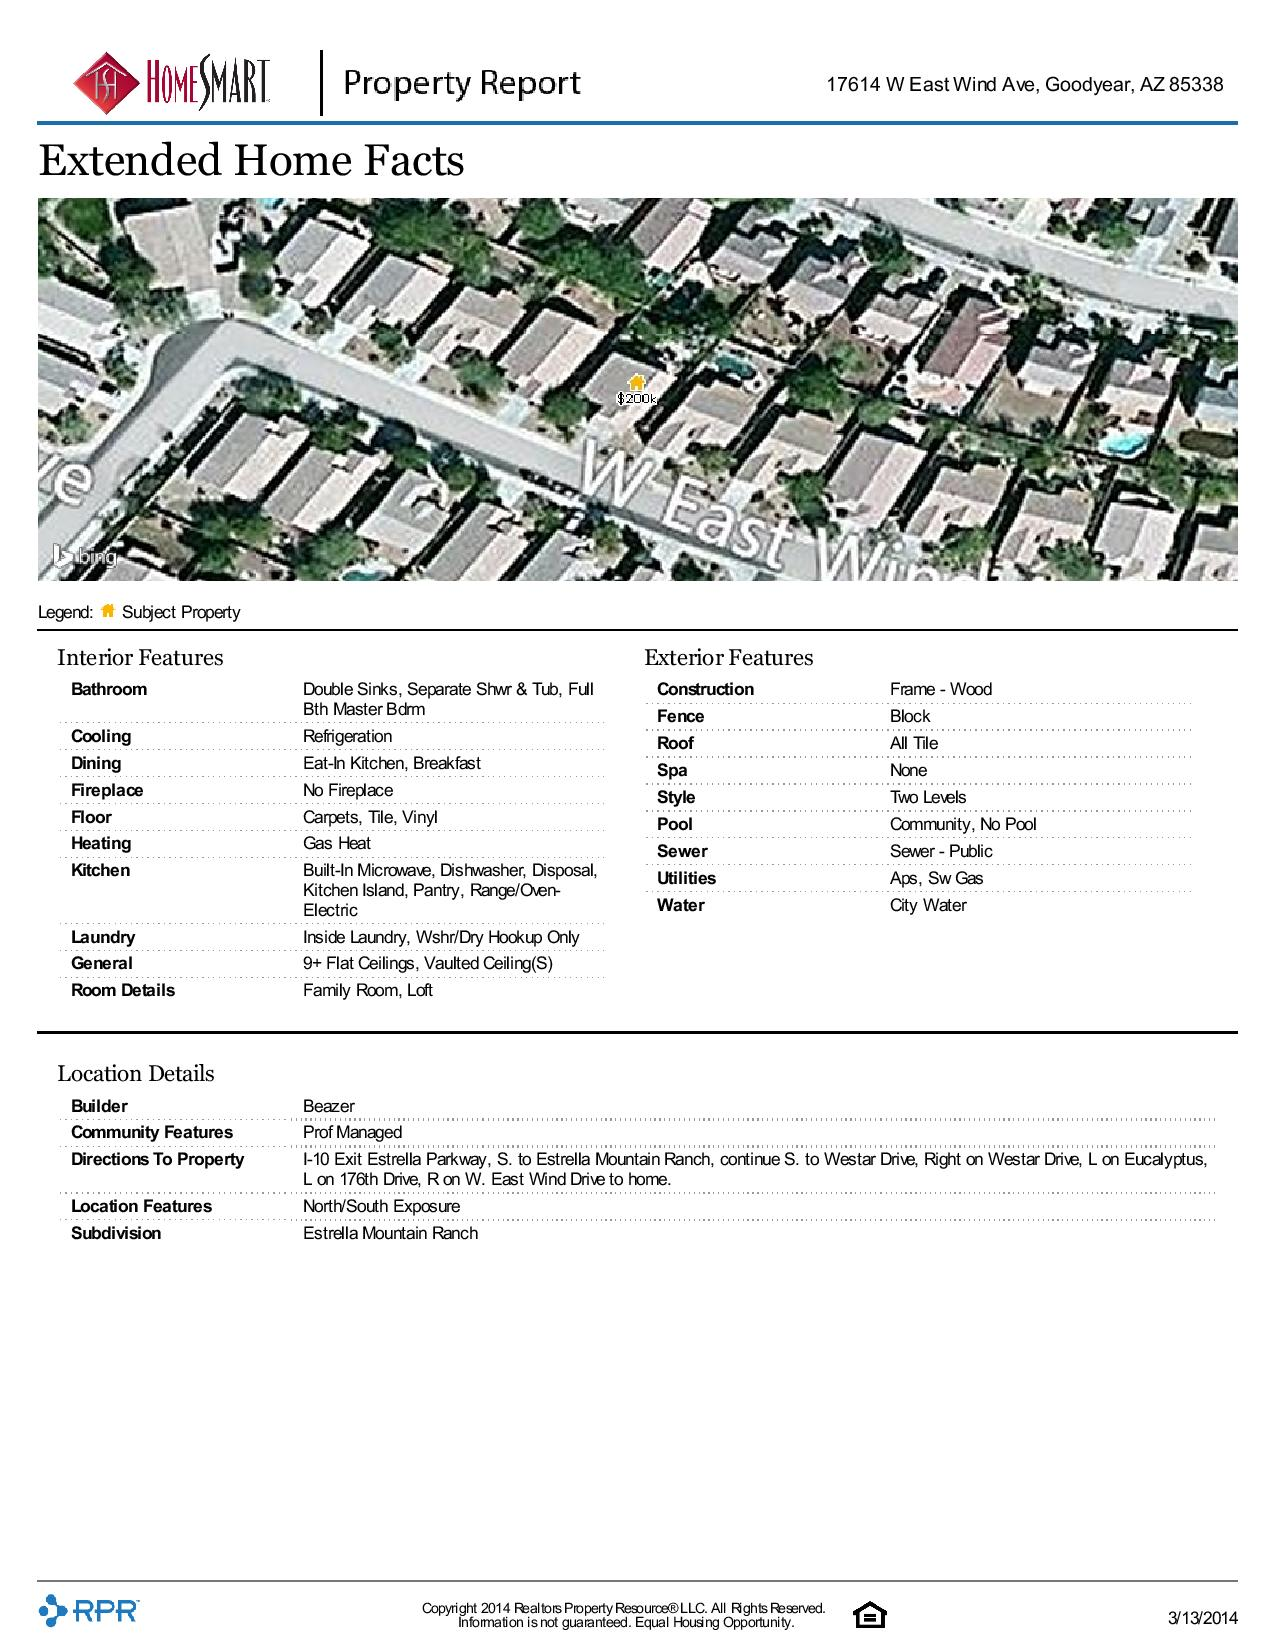 17614-W-East-Wind-Ave-Goodyear-AZ-85338-page-004